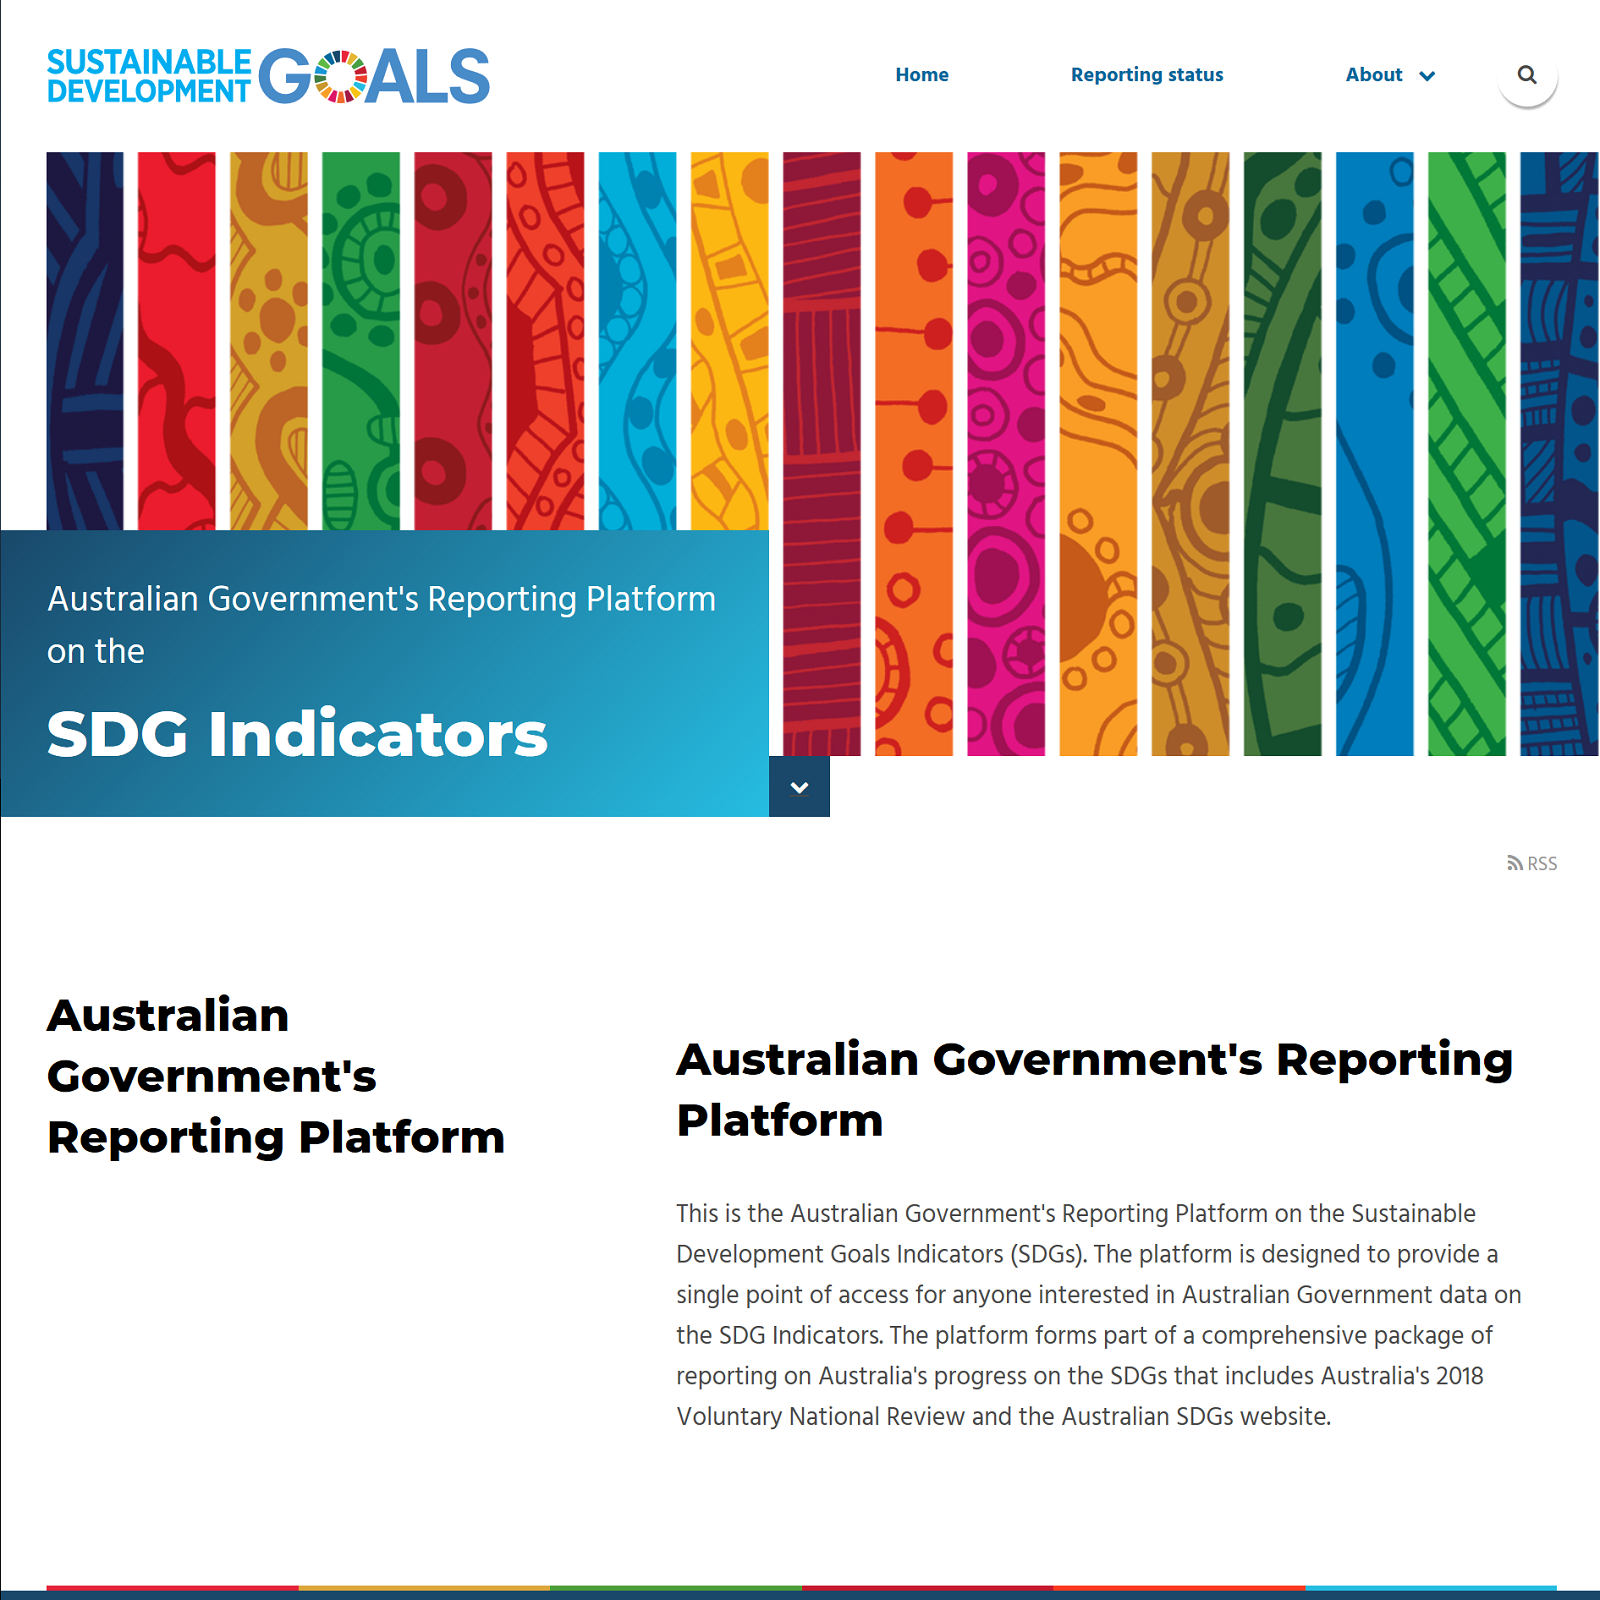 Australian Government's Reporting Platform